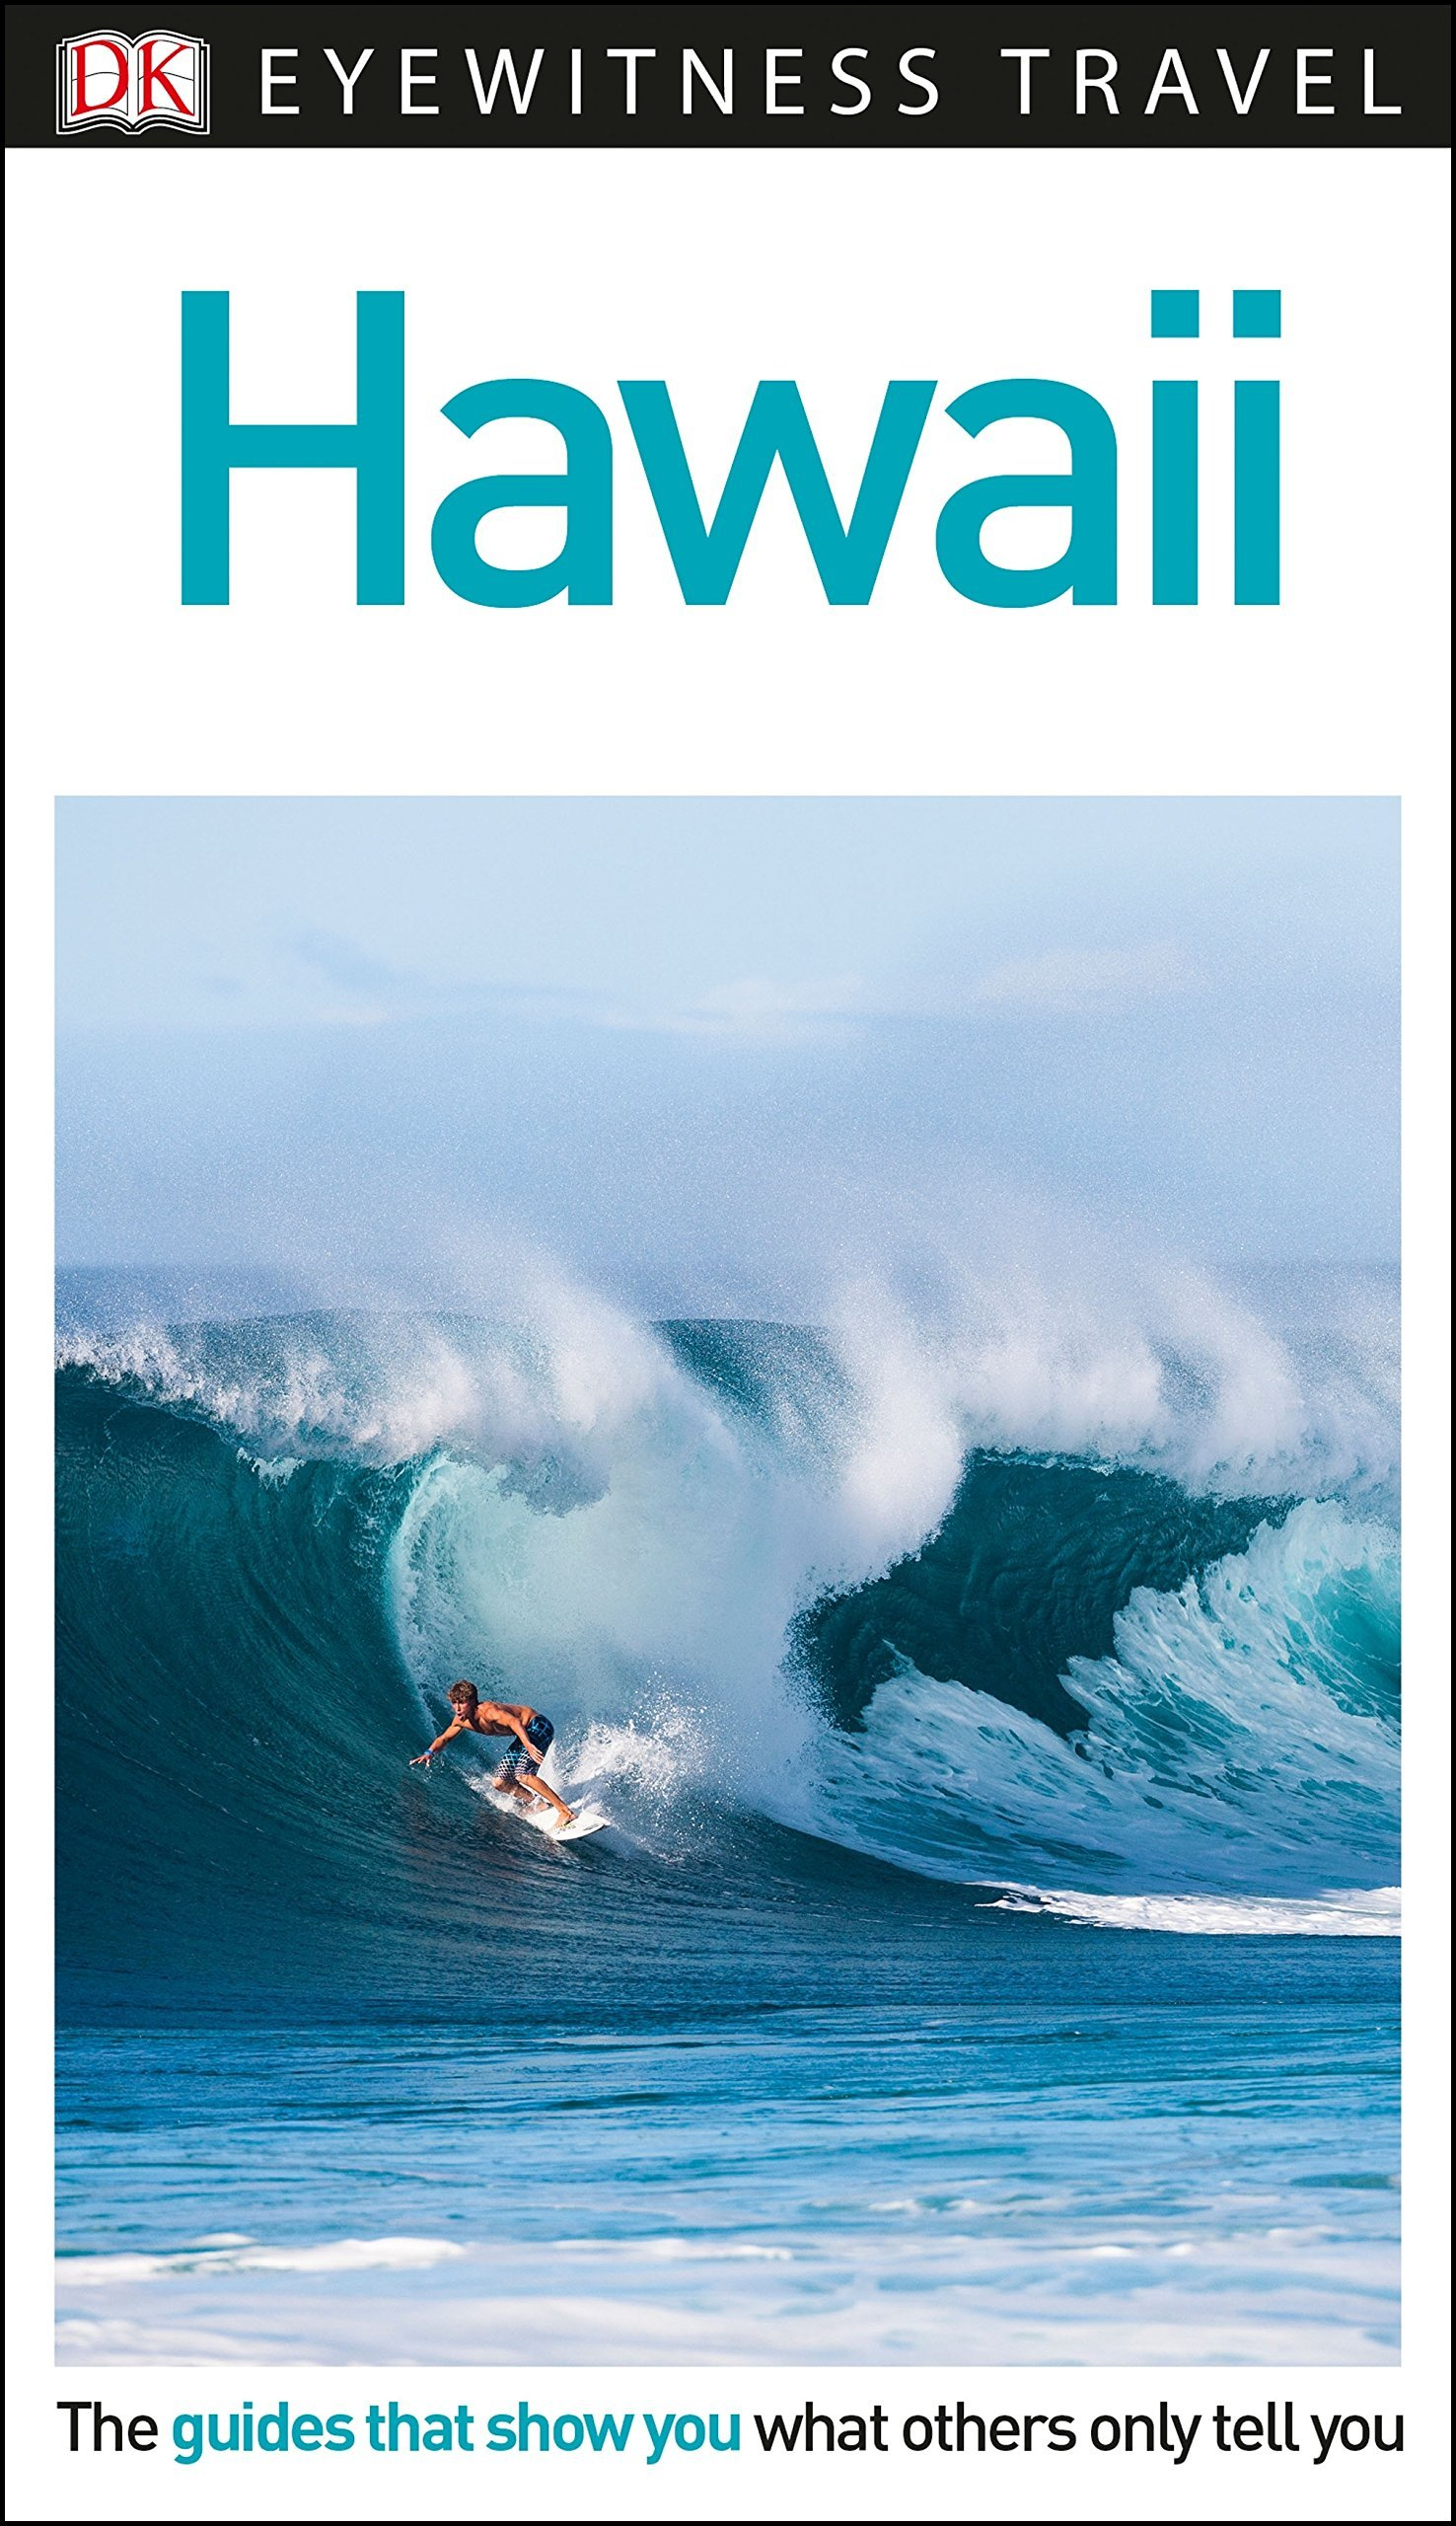 Hawaii (Capitool Engels) 9780241277829  Dorling Kindersley Eyewitness Travel Guides  Reisgidsen Hawaii